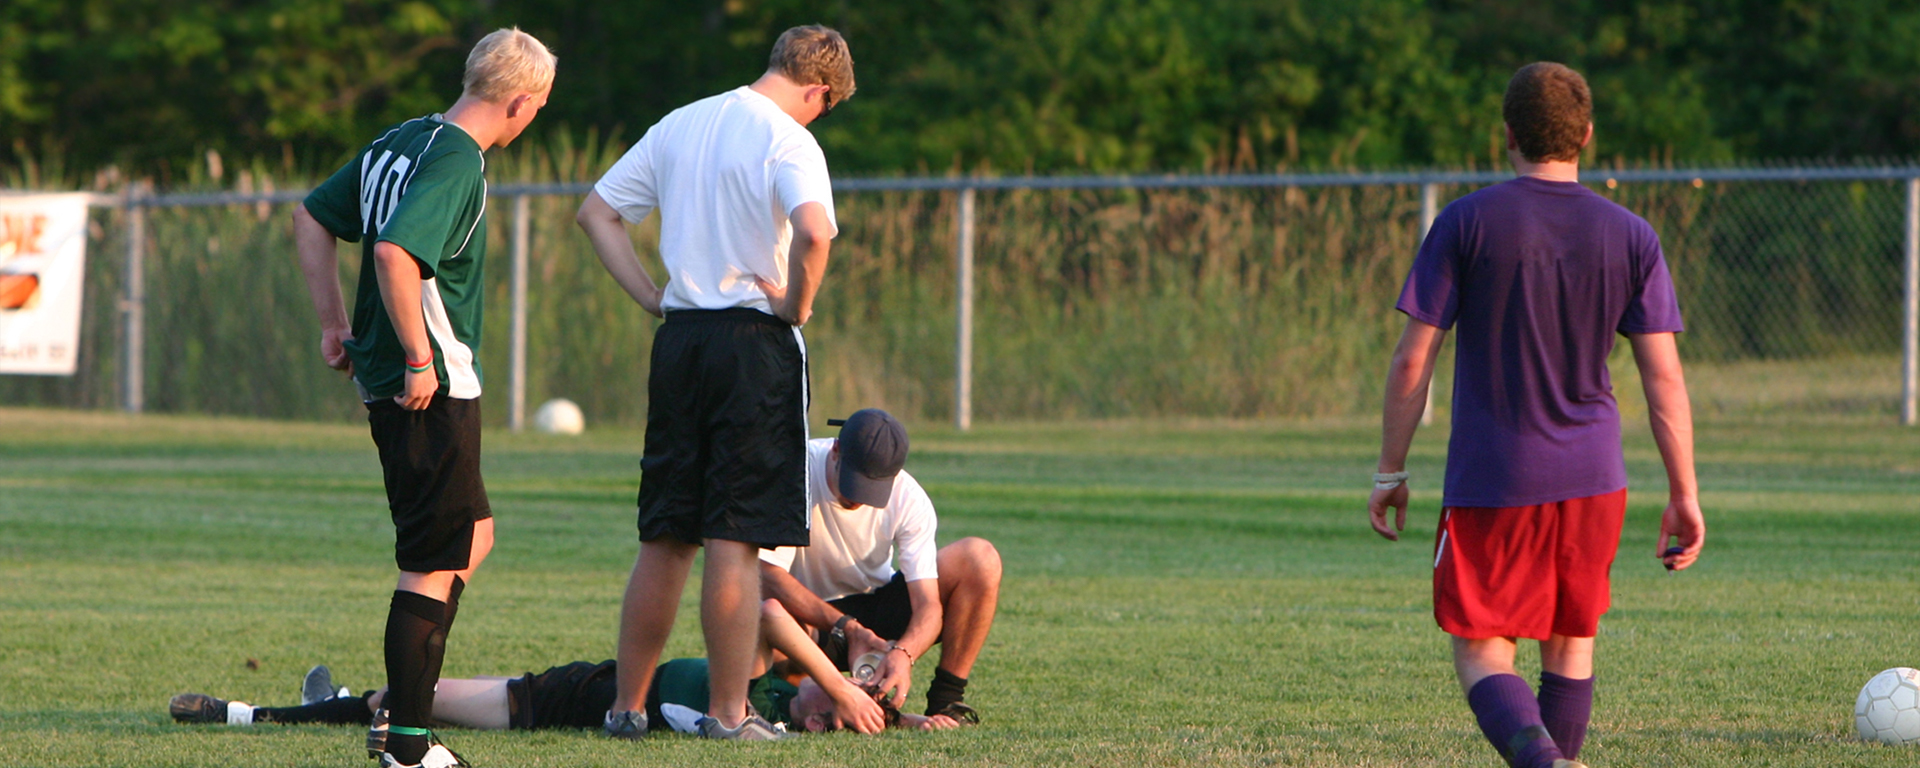 How to Manage a Concussion